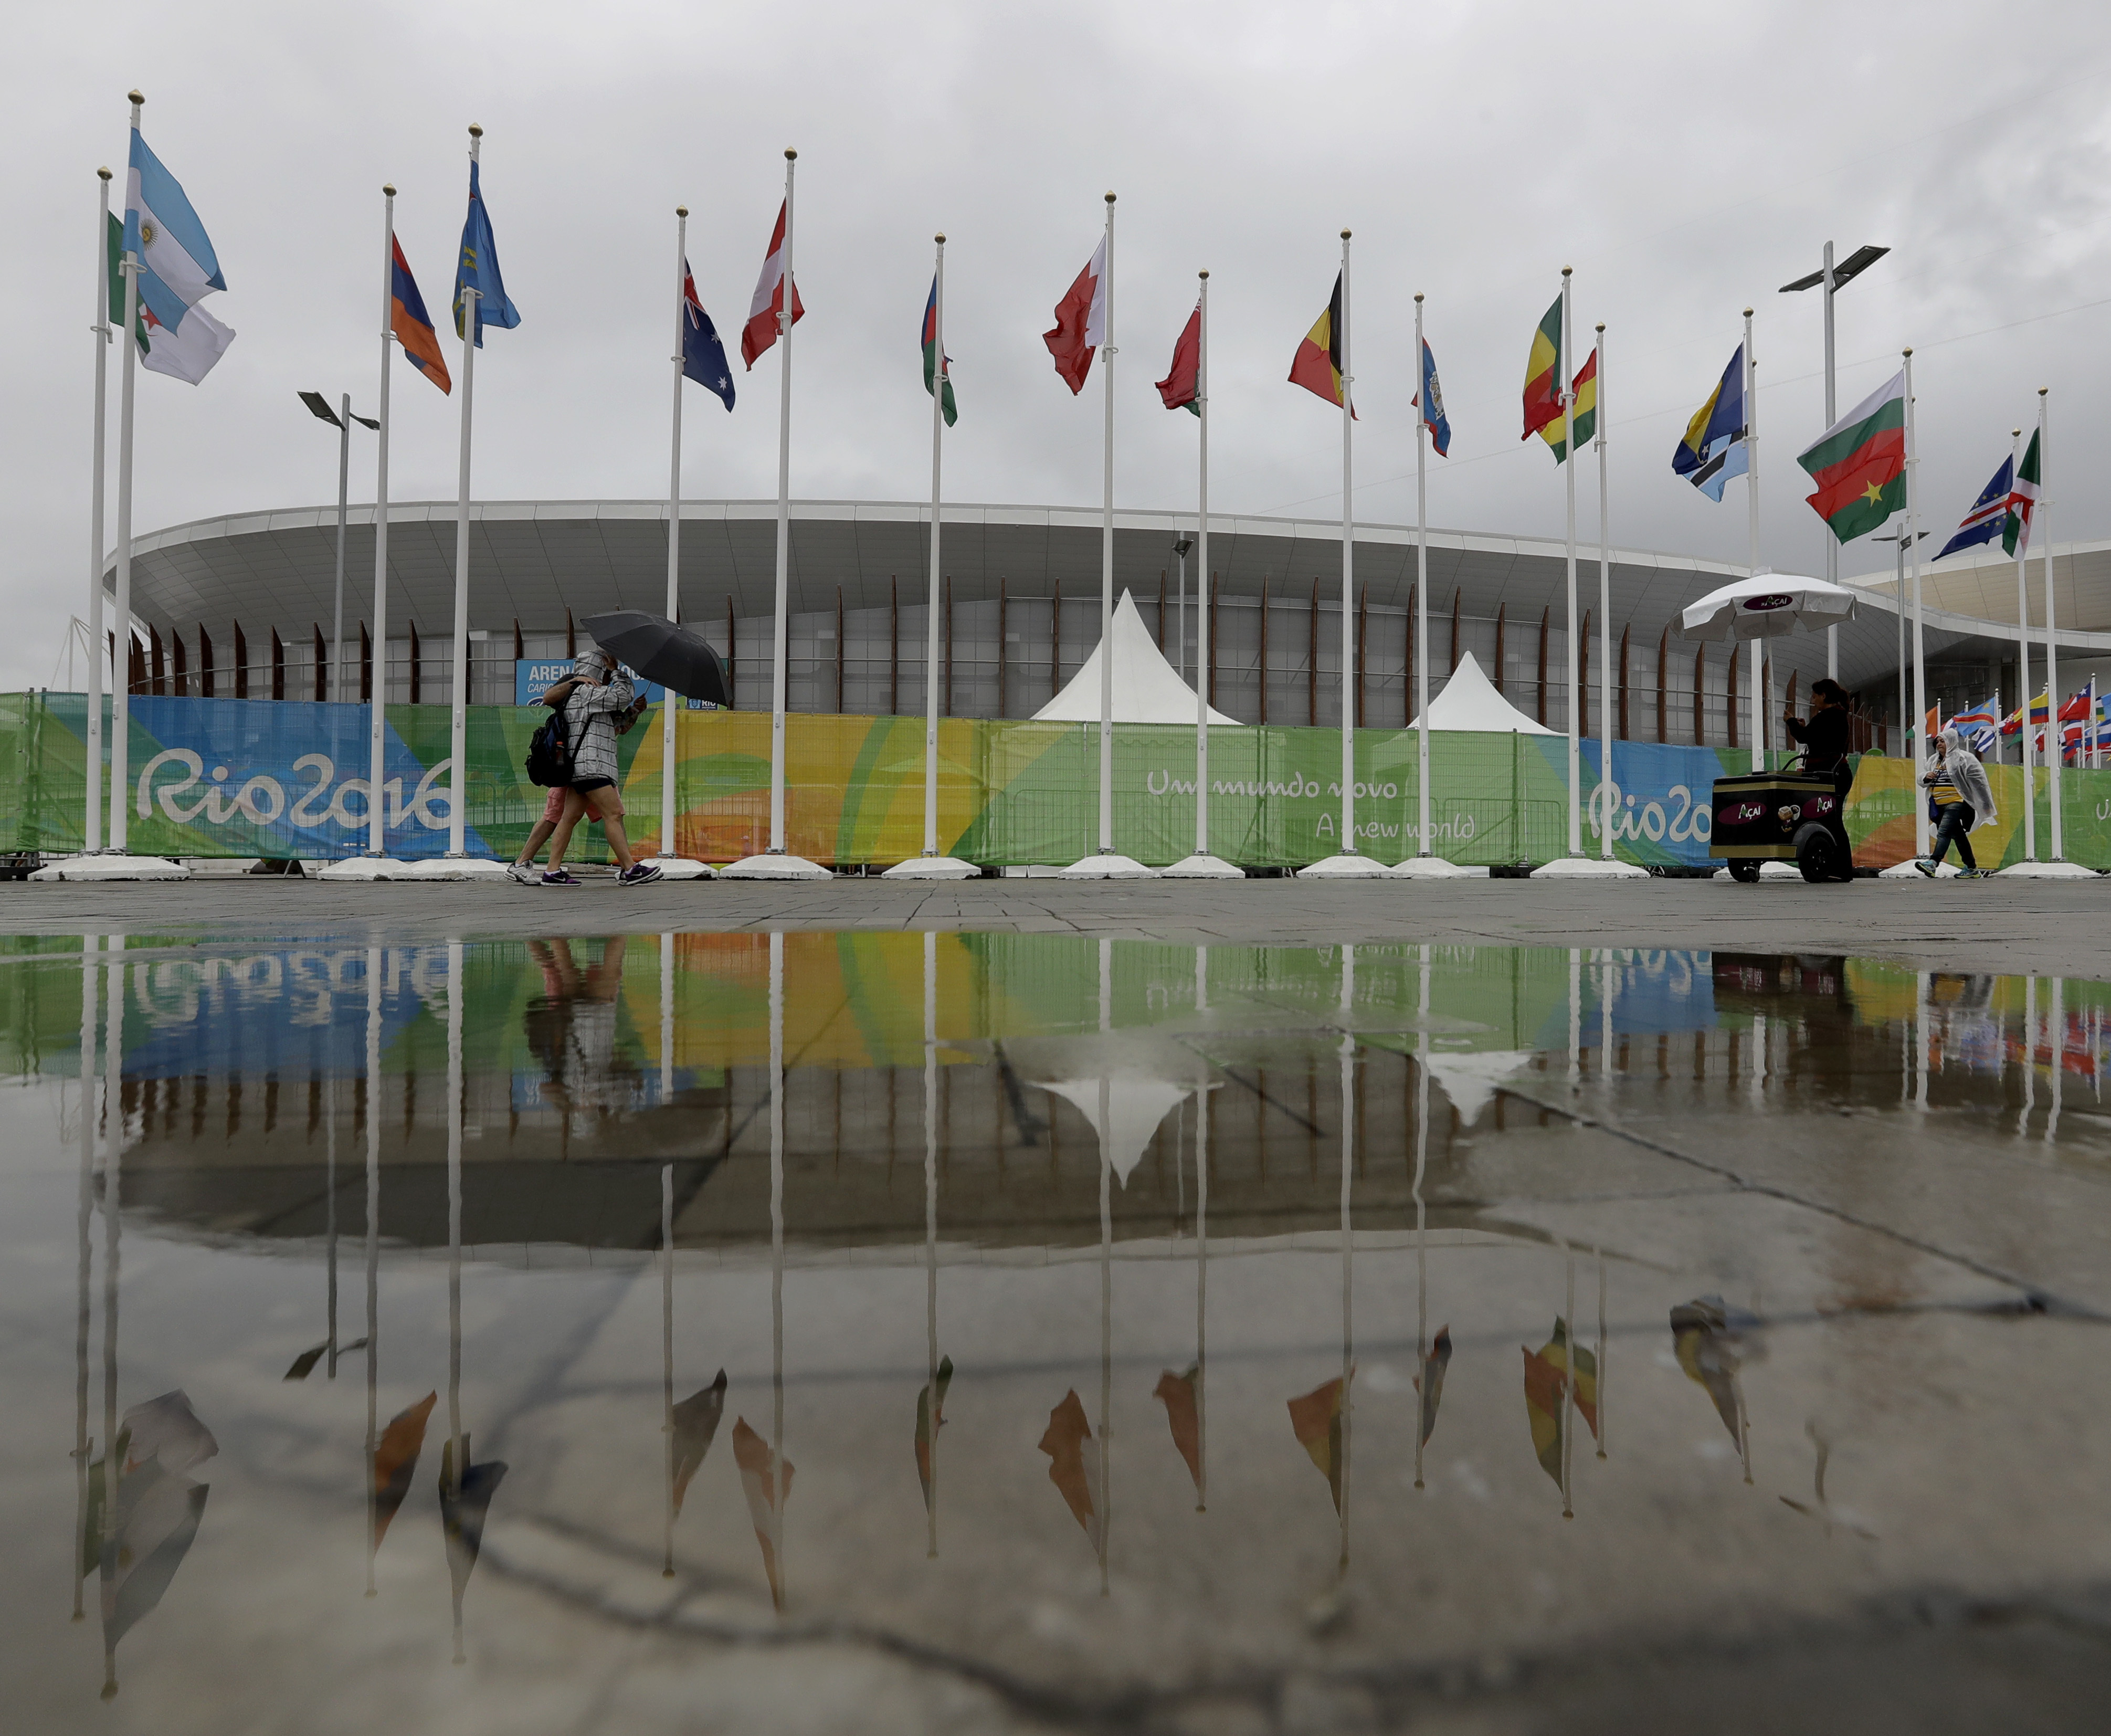 FILE - In this Aug. 10, 2016 file photo, people walk through Olympic Park in the rain at the 2016 Summer Olympics in Rio de Janeiro, Brazil. A recession and declining real estate market may spoil Rios plans to turn the heart of the Olympic Games into a bu